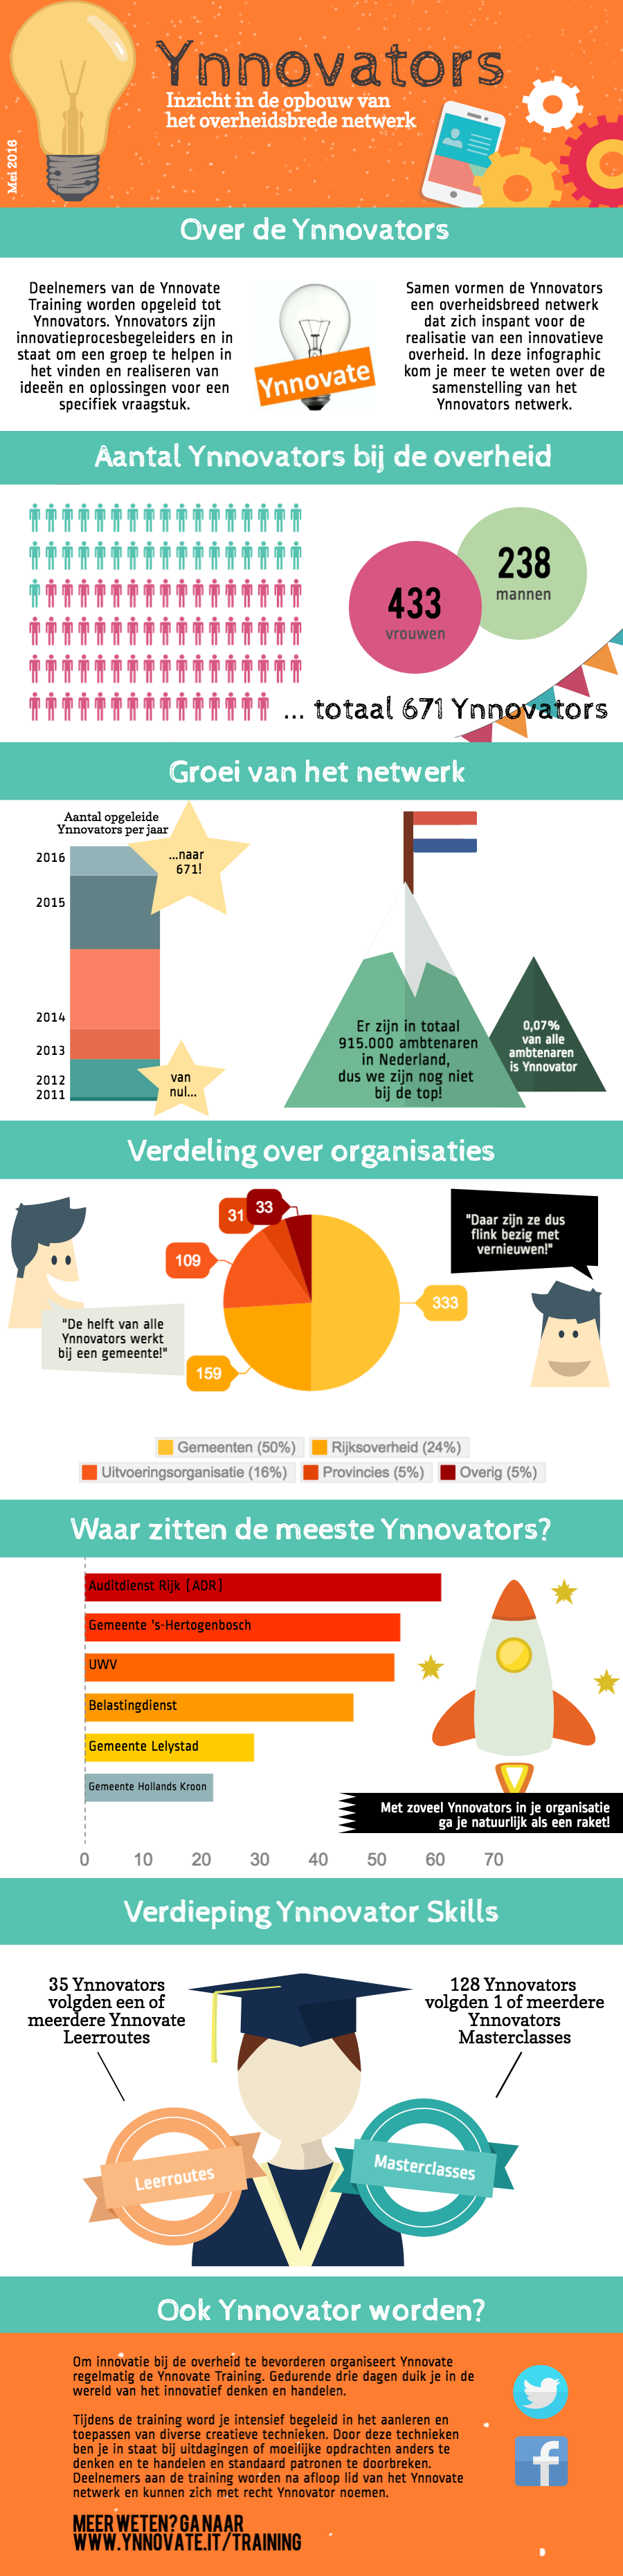 Ynnovators-Infographic-Mei-2016